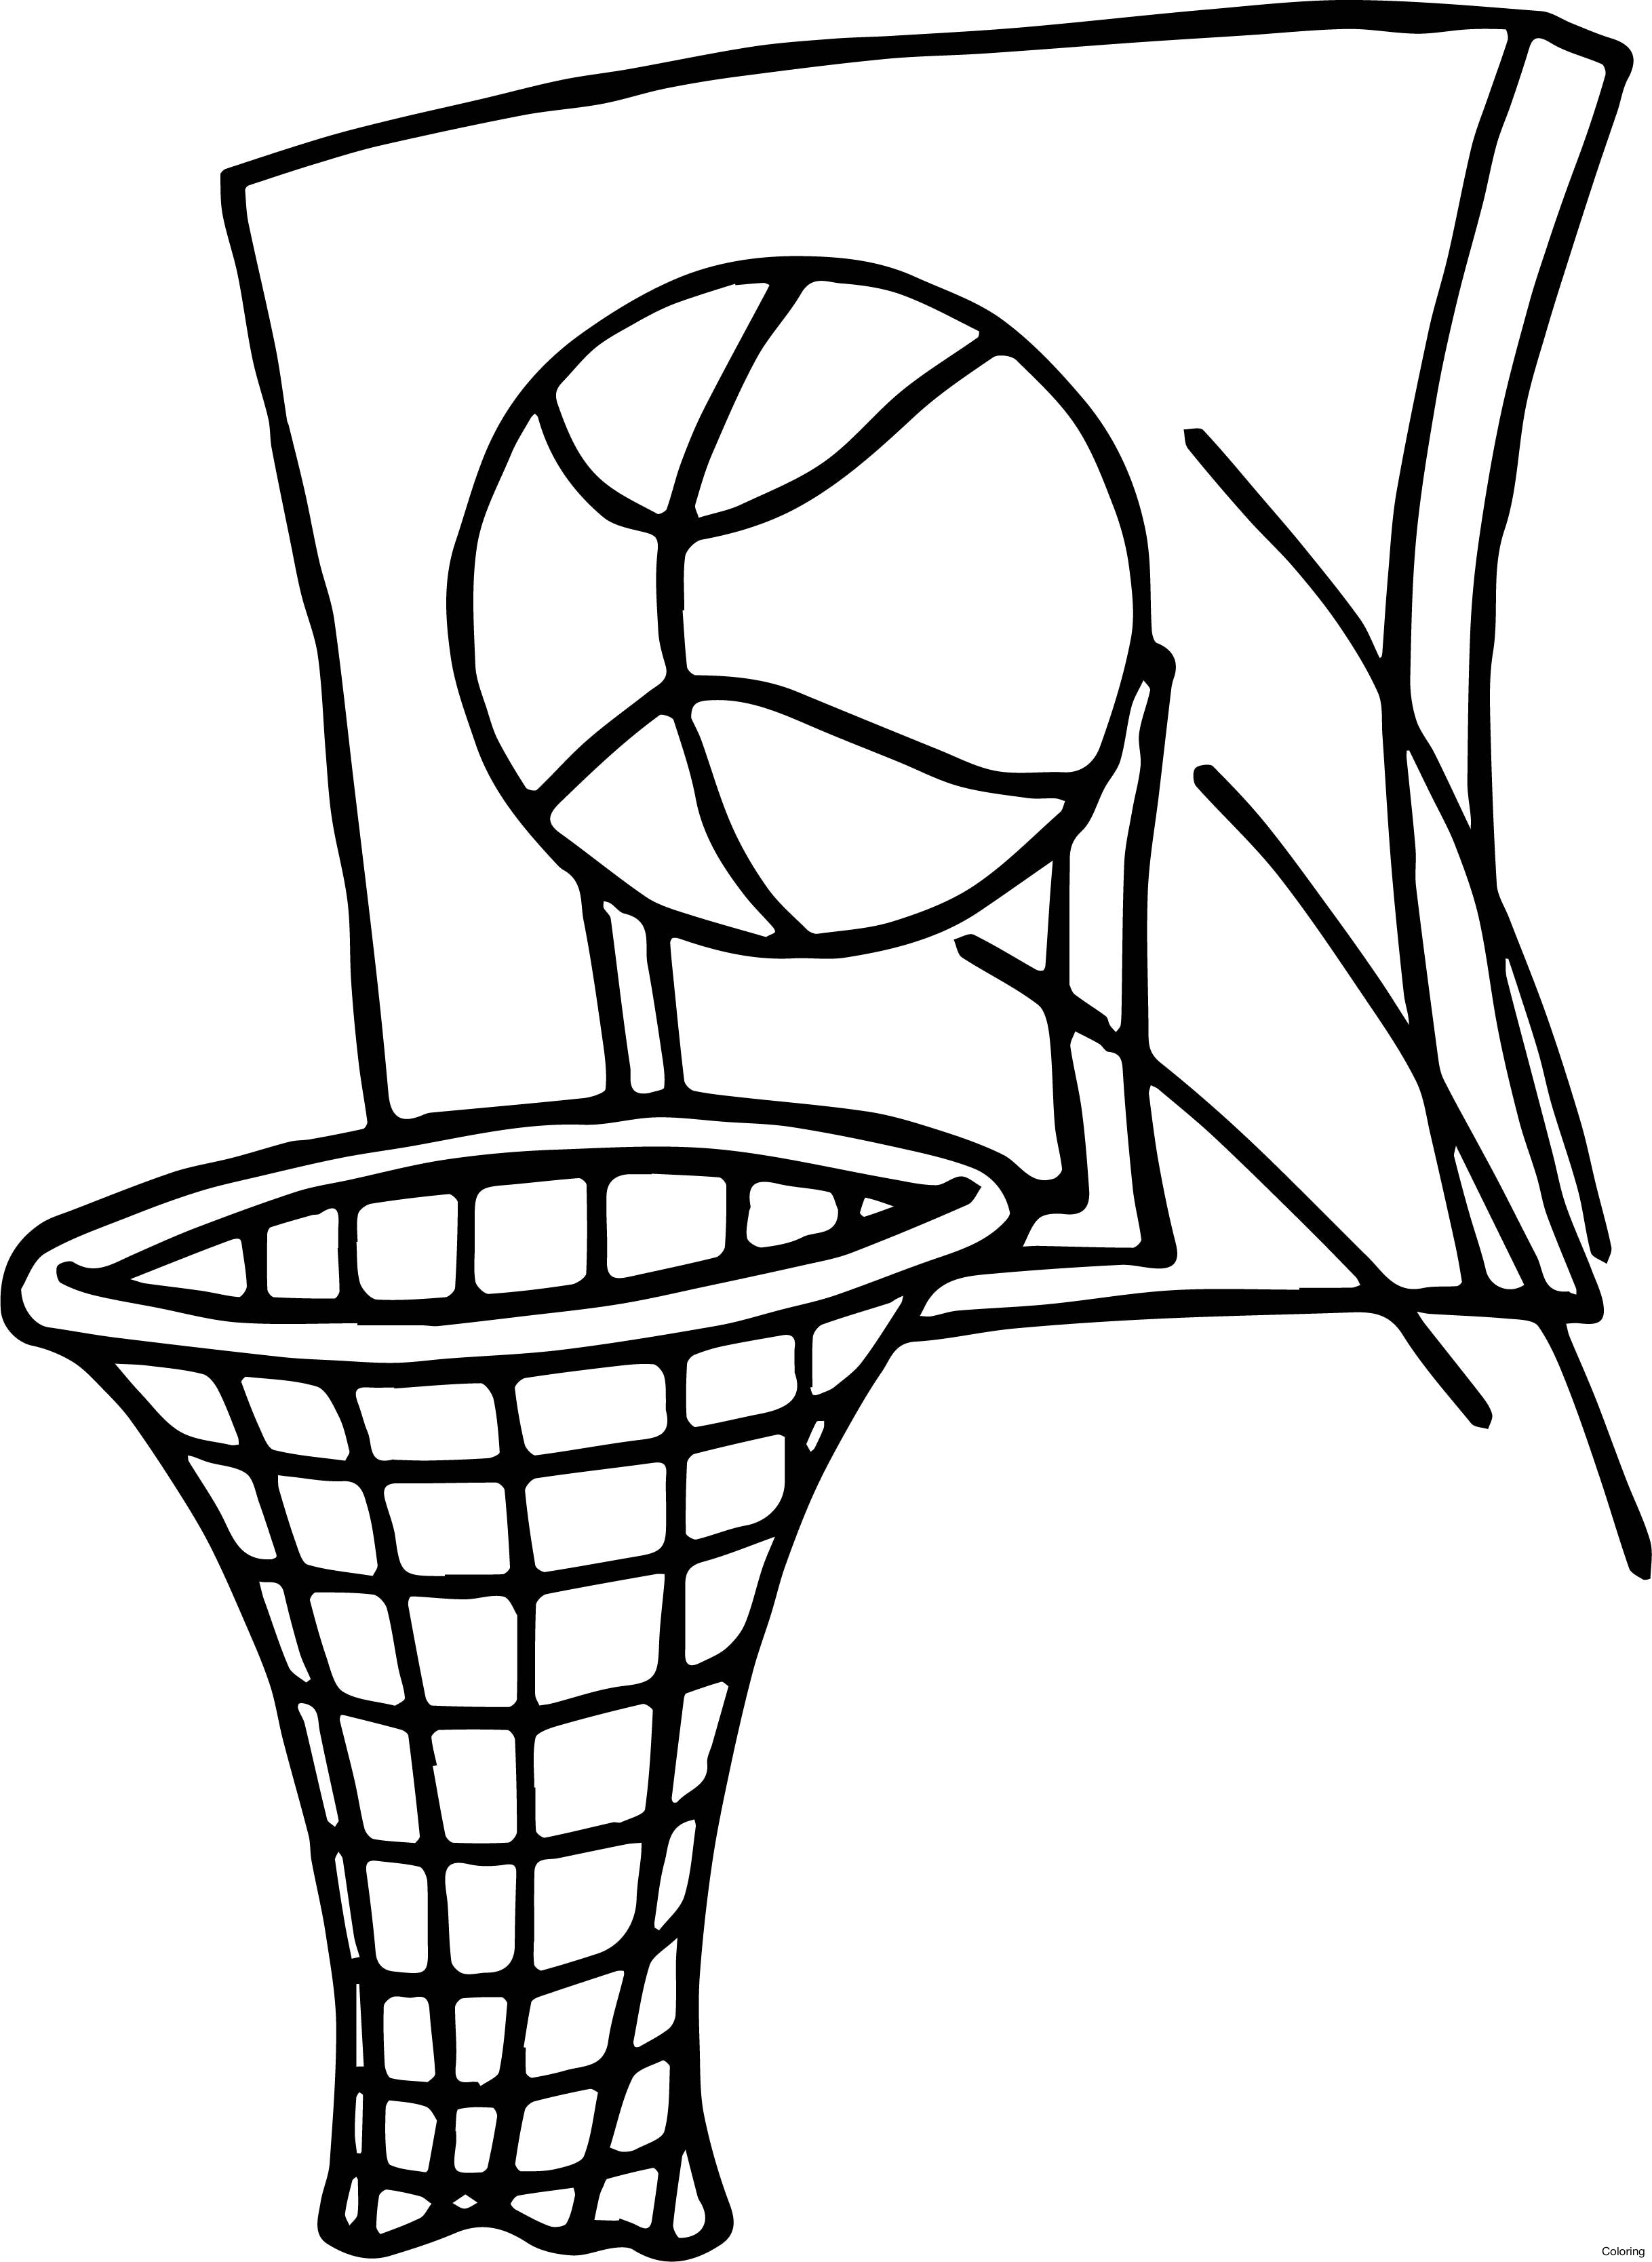 Basketball Ball Drawing At Getdrawings